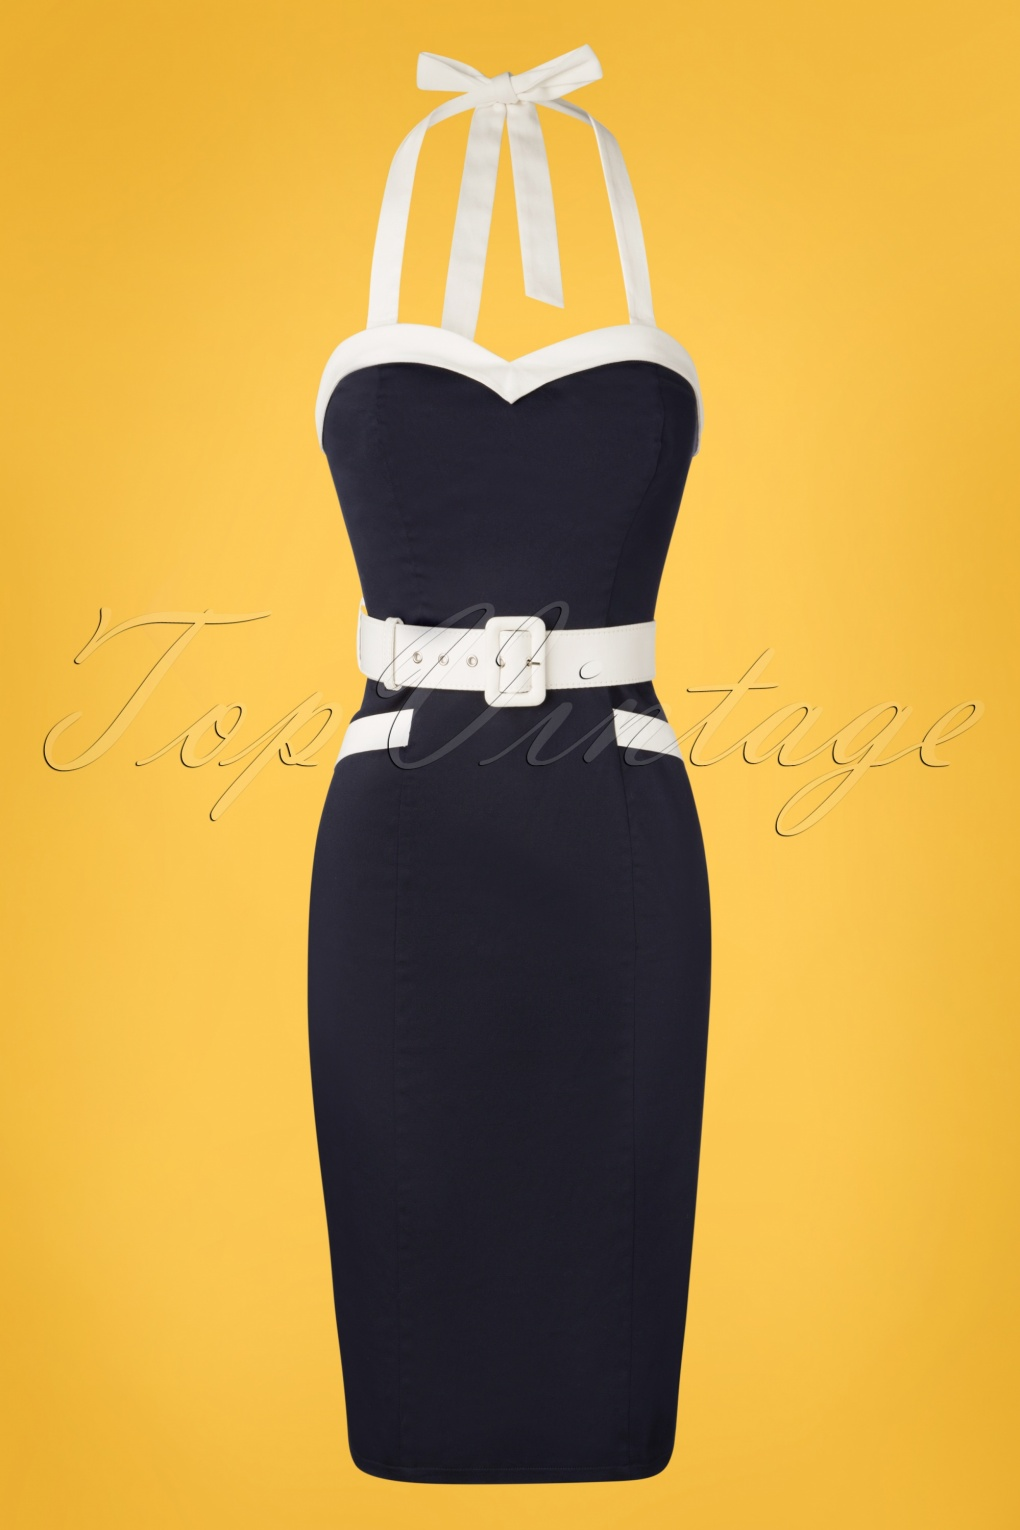 50 Vintage Inspired Clothing Stores 50s Georgie Nautical Halter Pencil Dress in Navy £56.57 AT vintagedancer.com